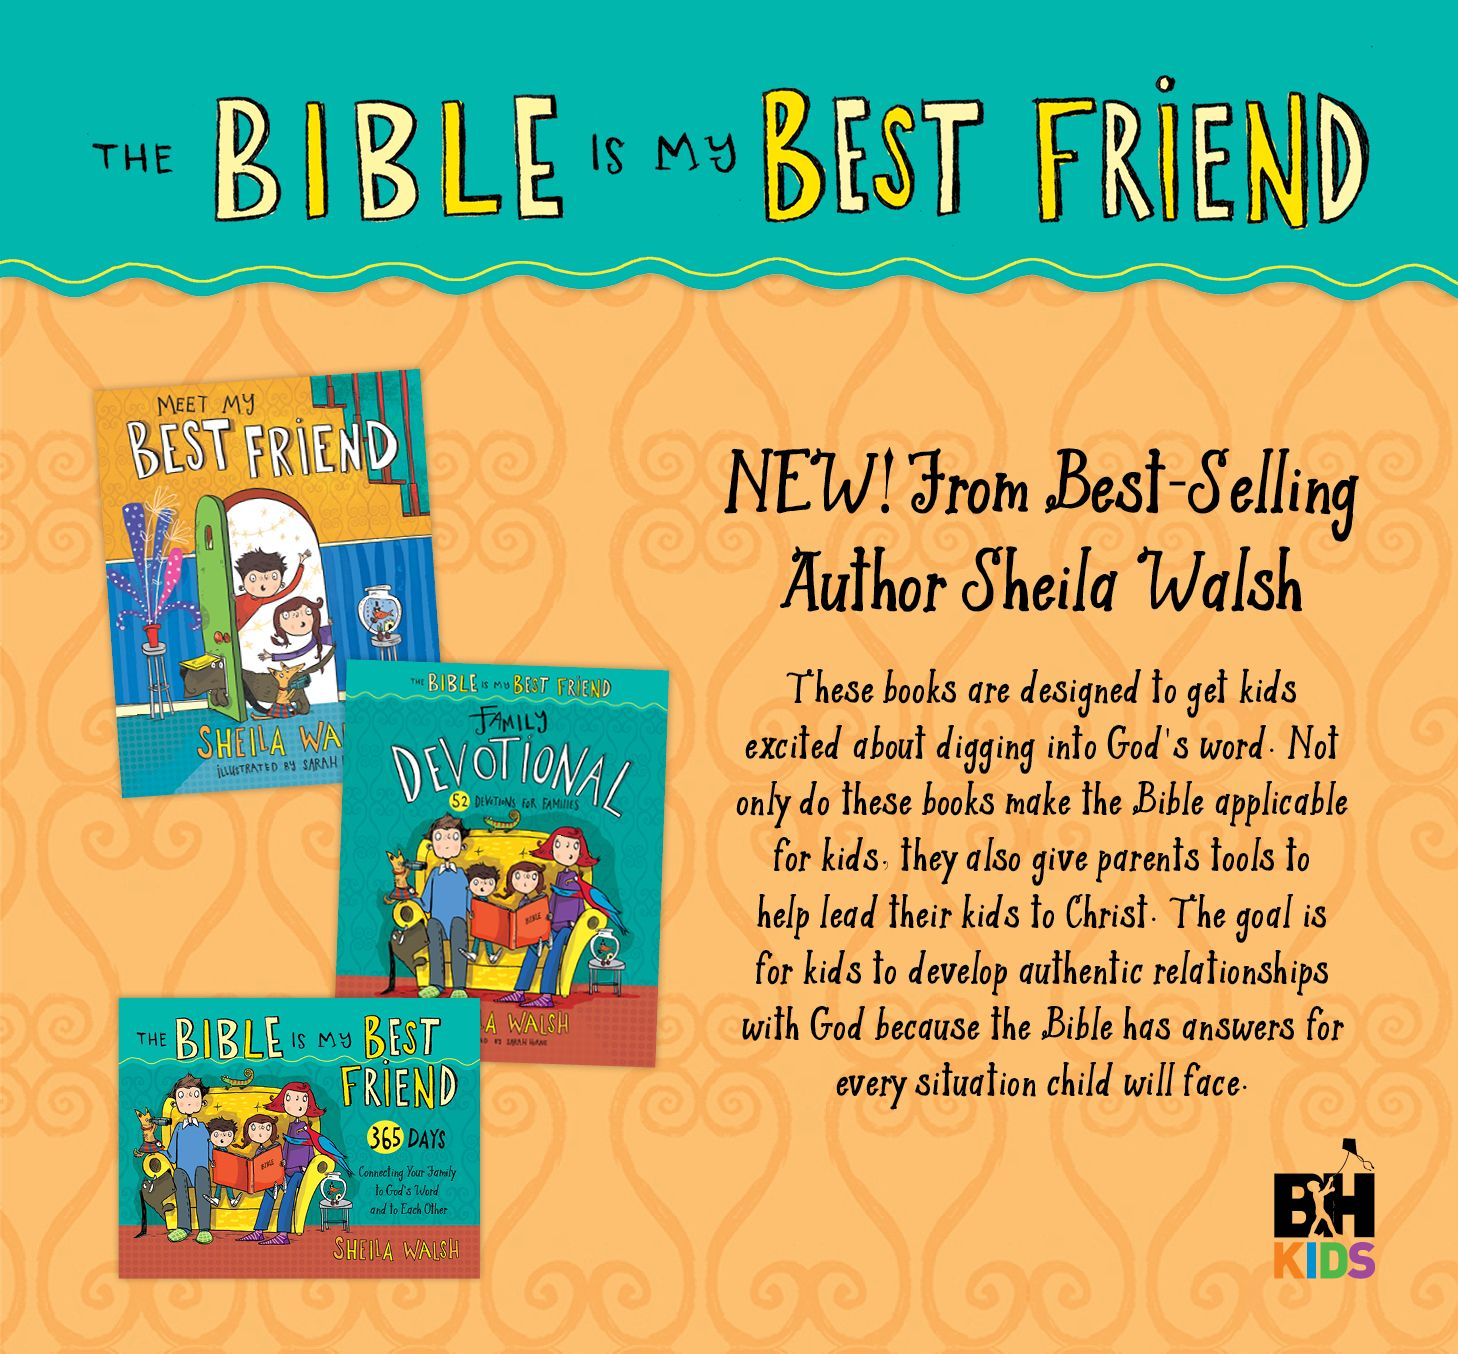 Help Sheila Walsh launch her new book series for young children and their parents, which shows families how to spend time daily with their best friend - the Bible!   Go here http://j.mp/1JO09tZ to apply. Hurry, spots are limited!